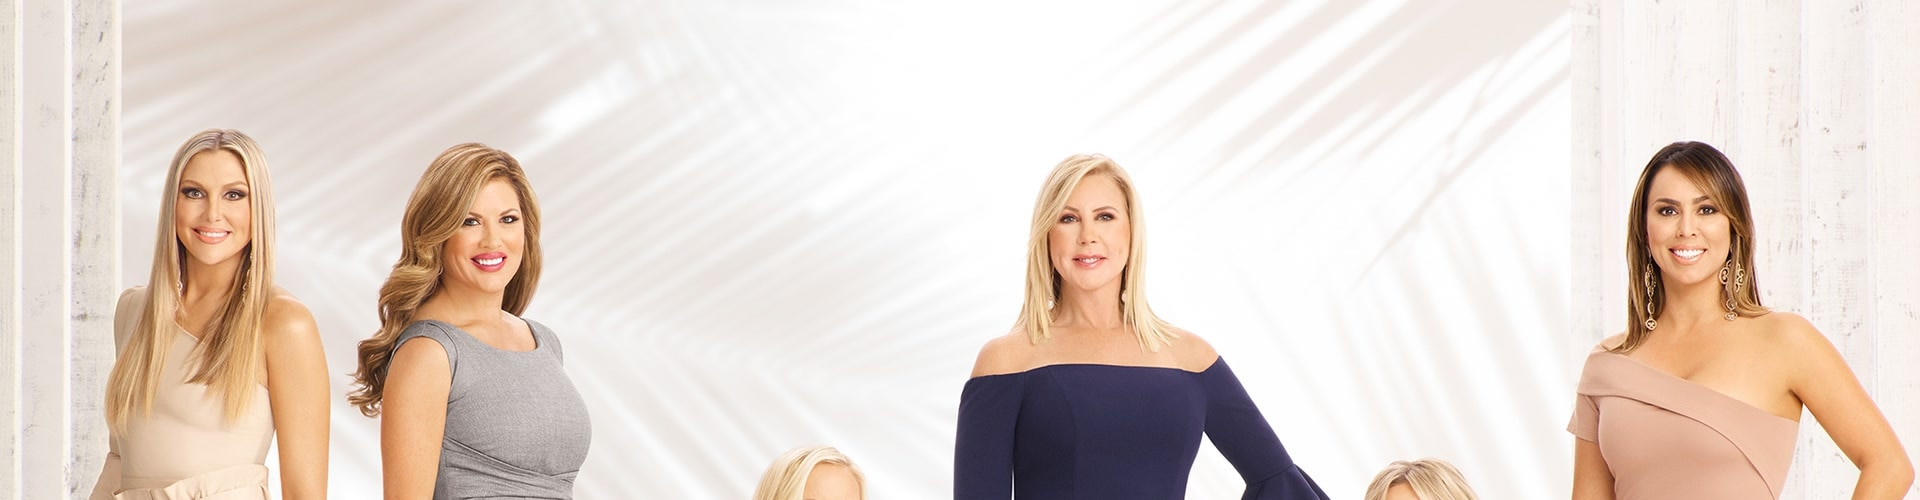 Watch The Real Housewives of Orange County - Specials Online